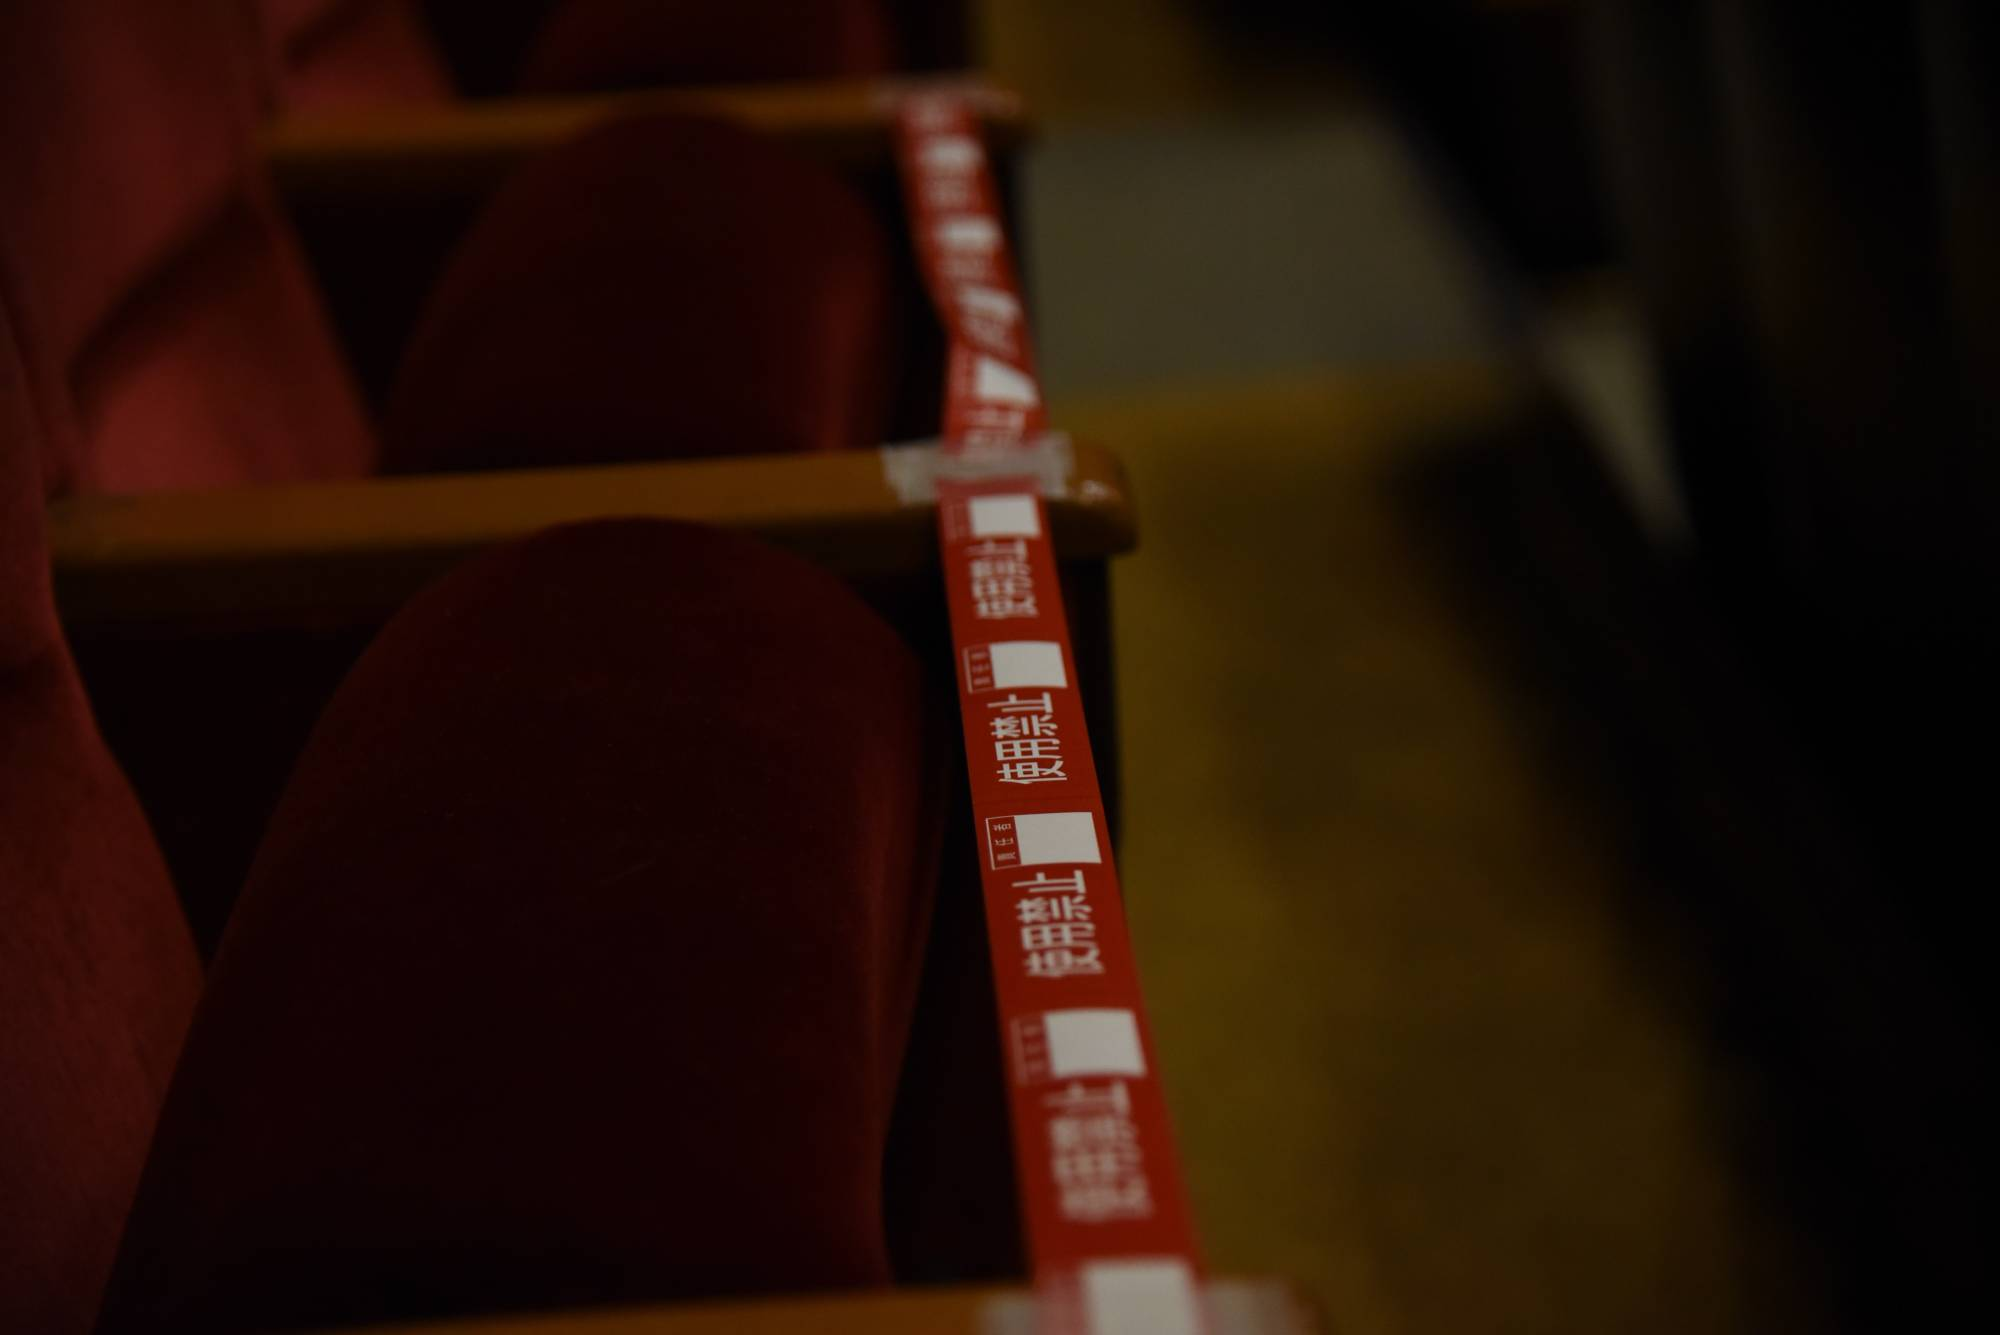 Seats in Ryogoku Kokugikan are blocked off by tape to ensure physical distancing. | DAN ORLOWITZ